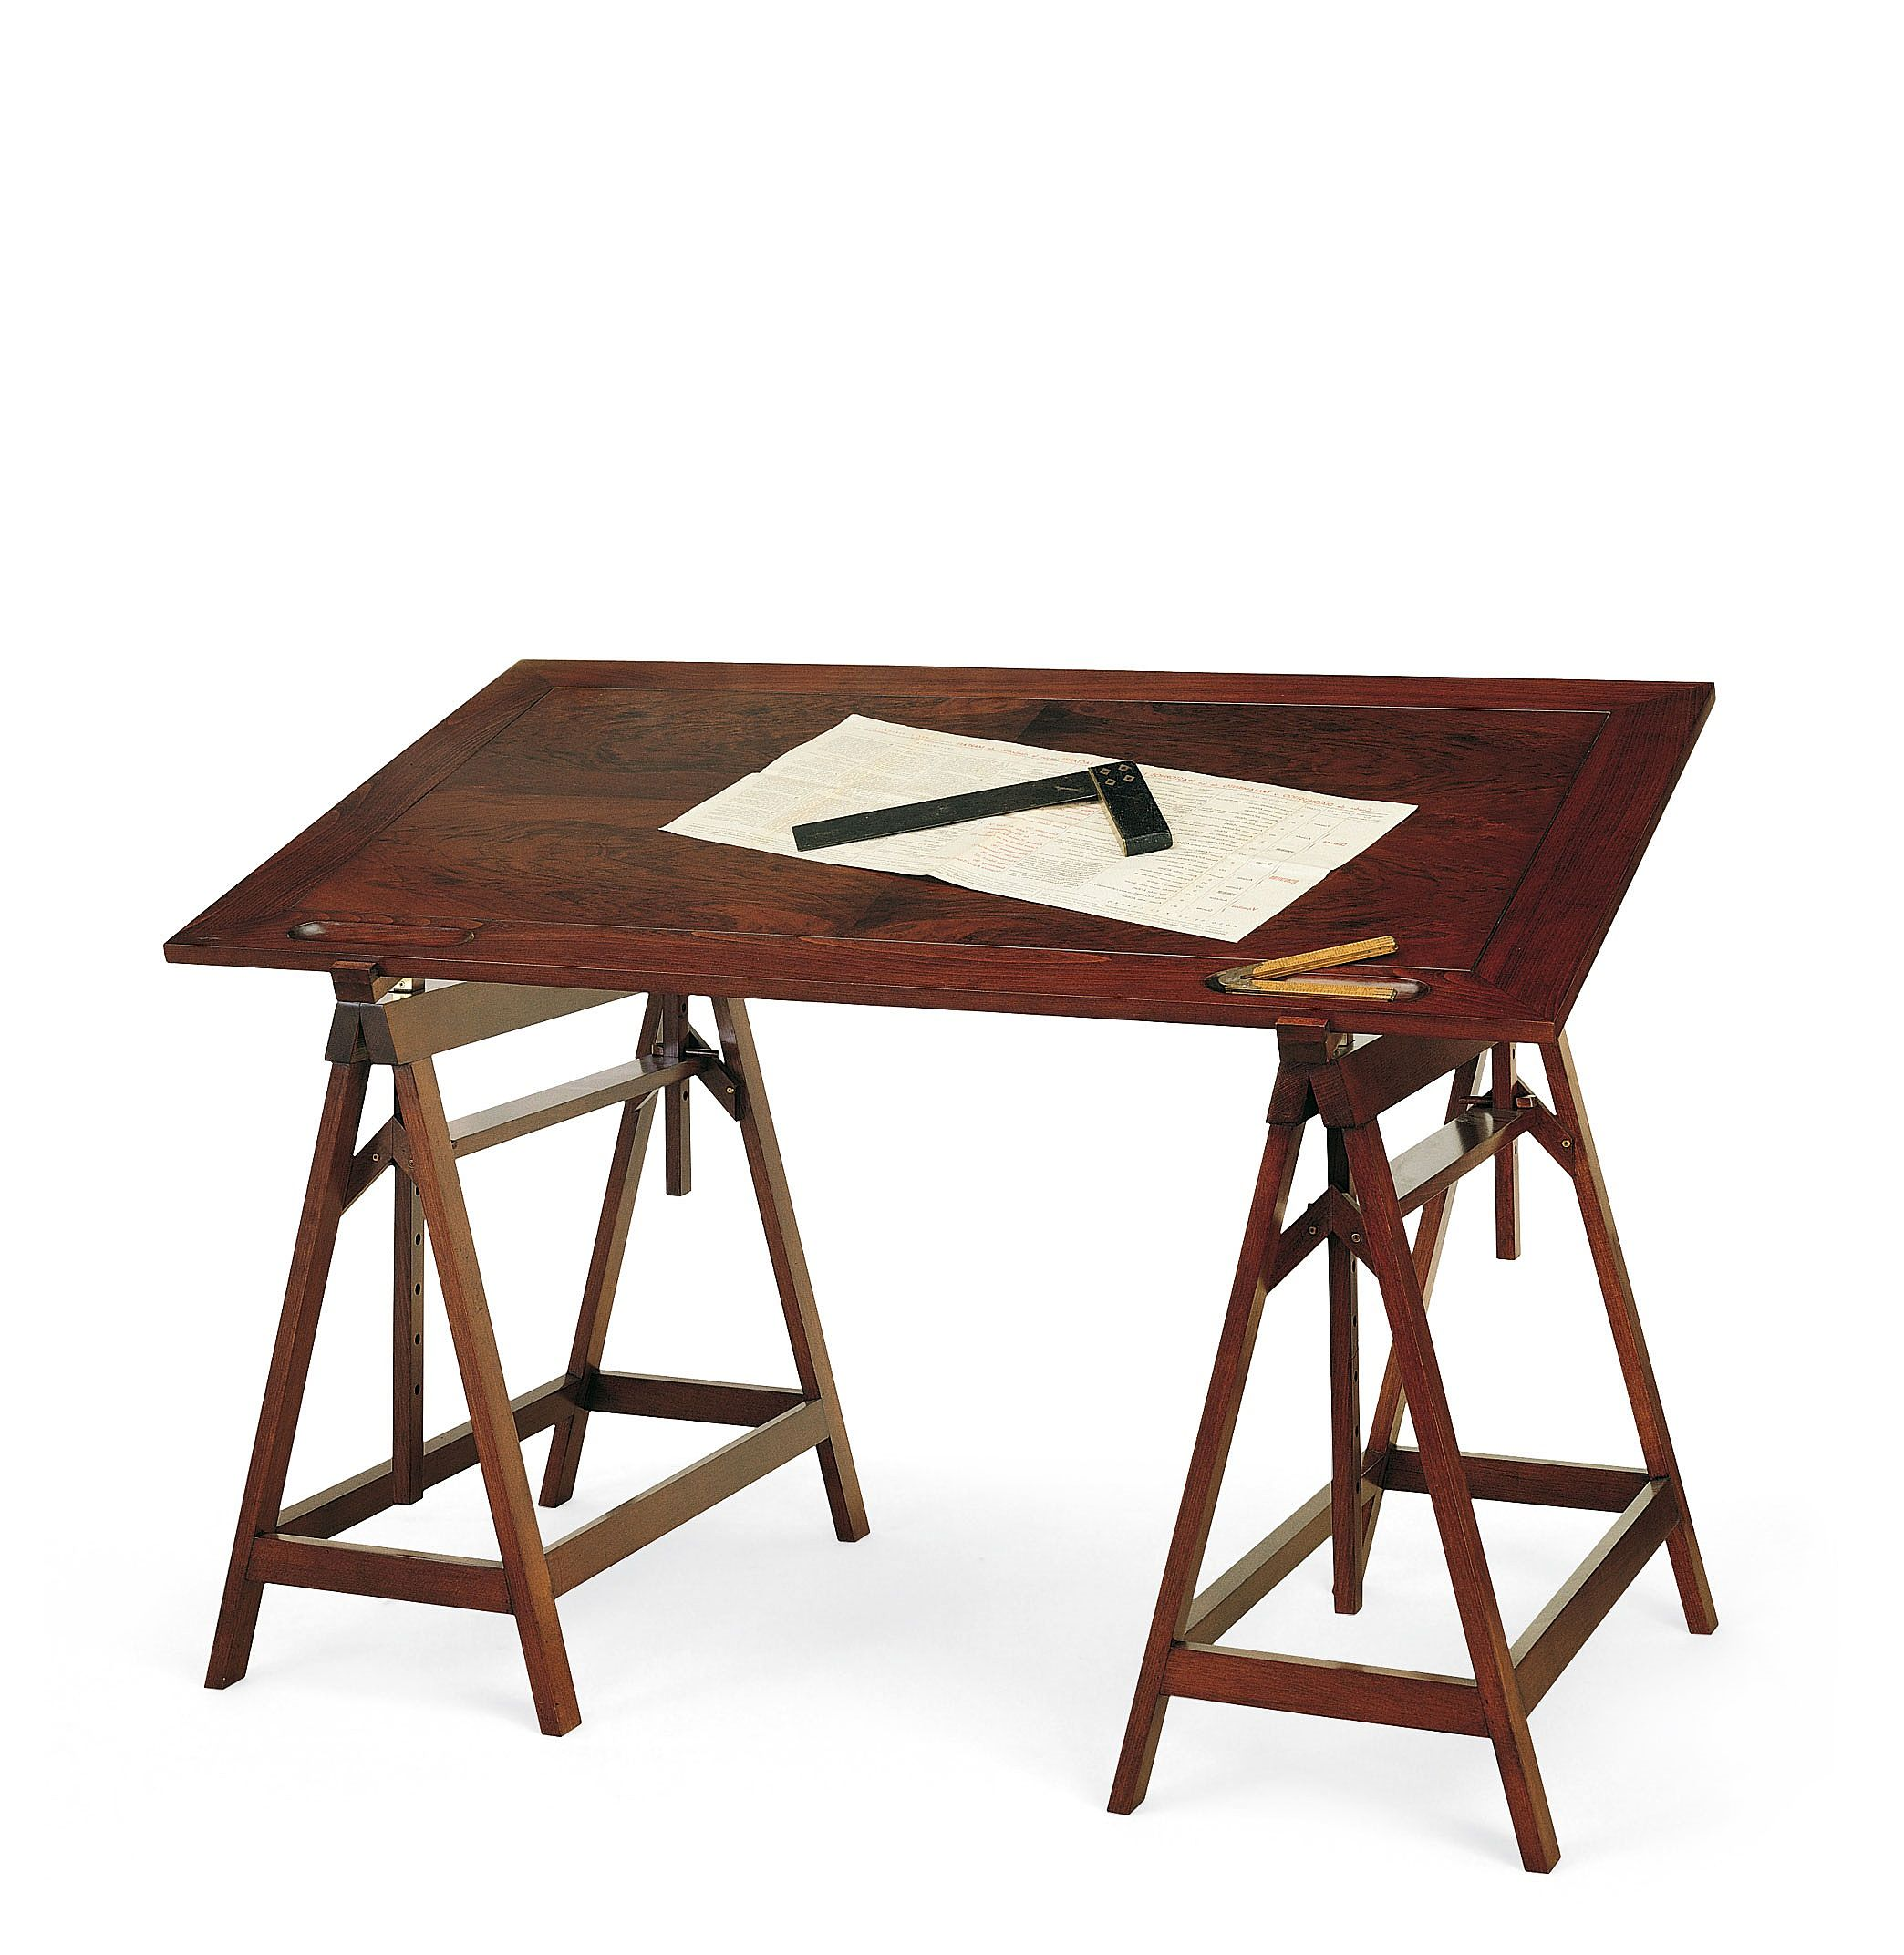 ... Architect table - T-586 ...